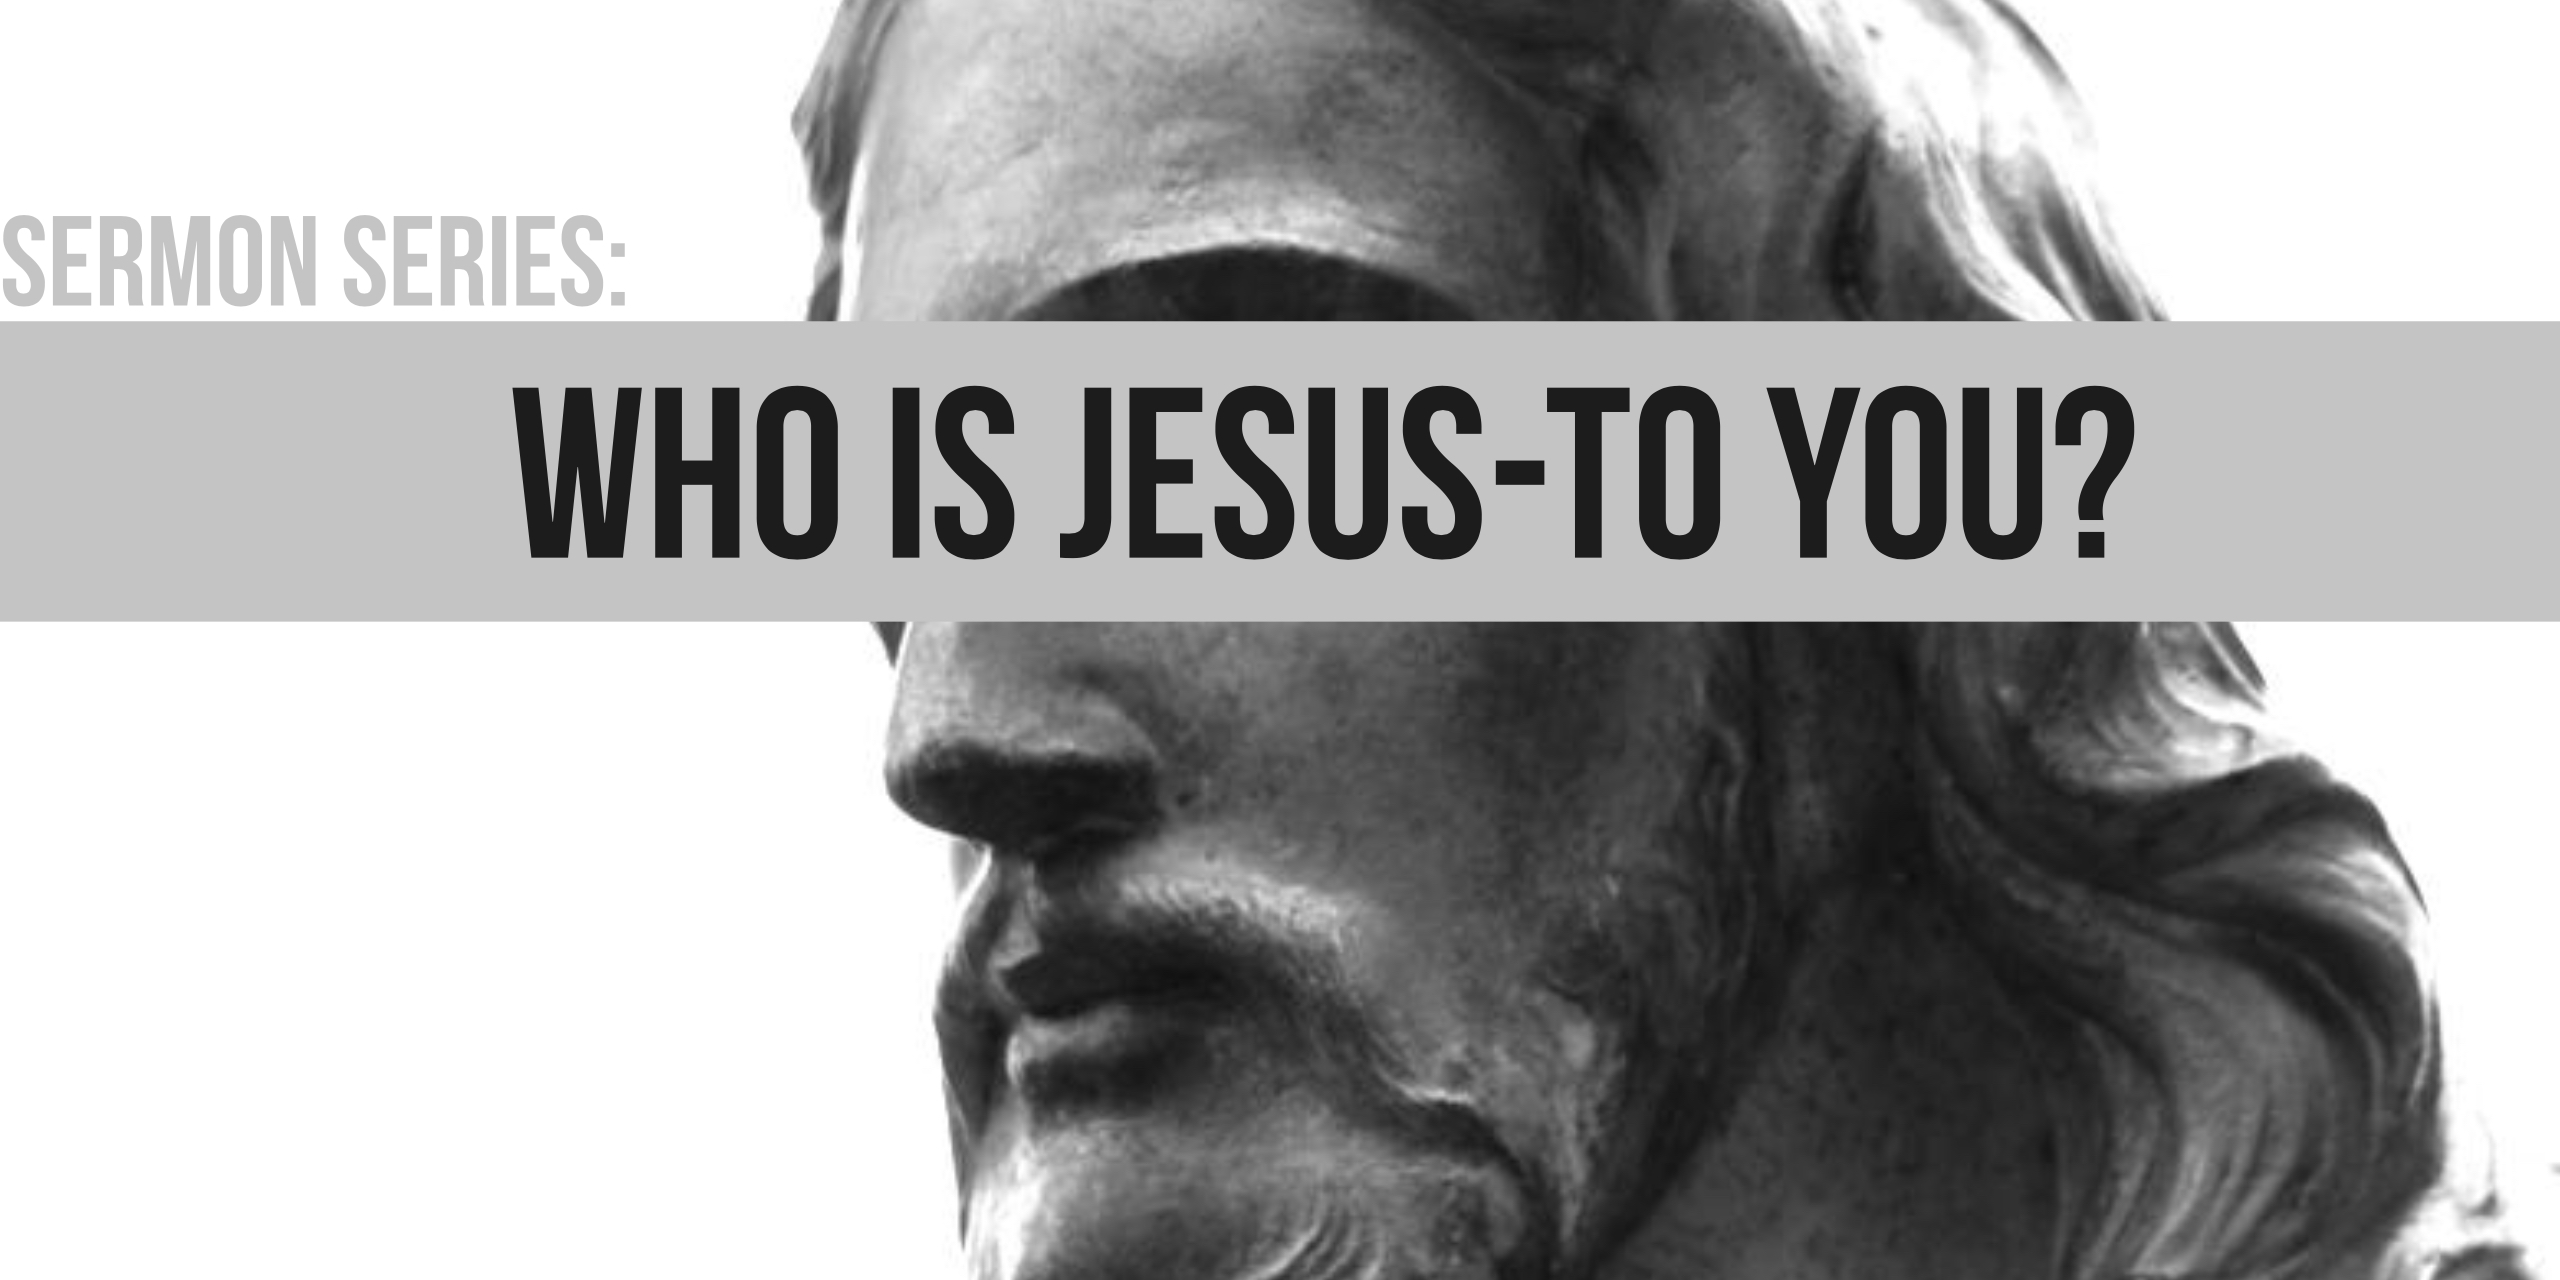 Who is Jesus-to You?Sermon page.jpg